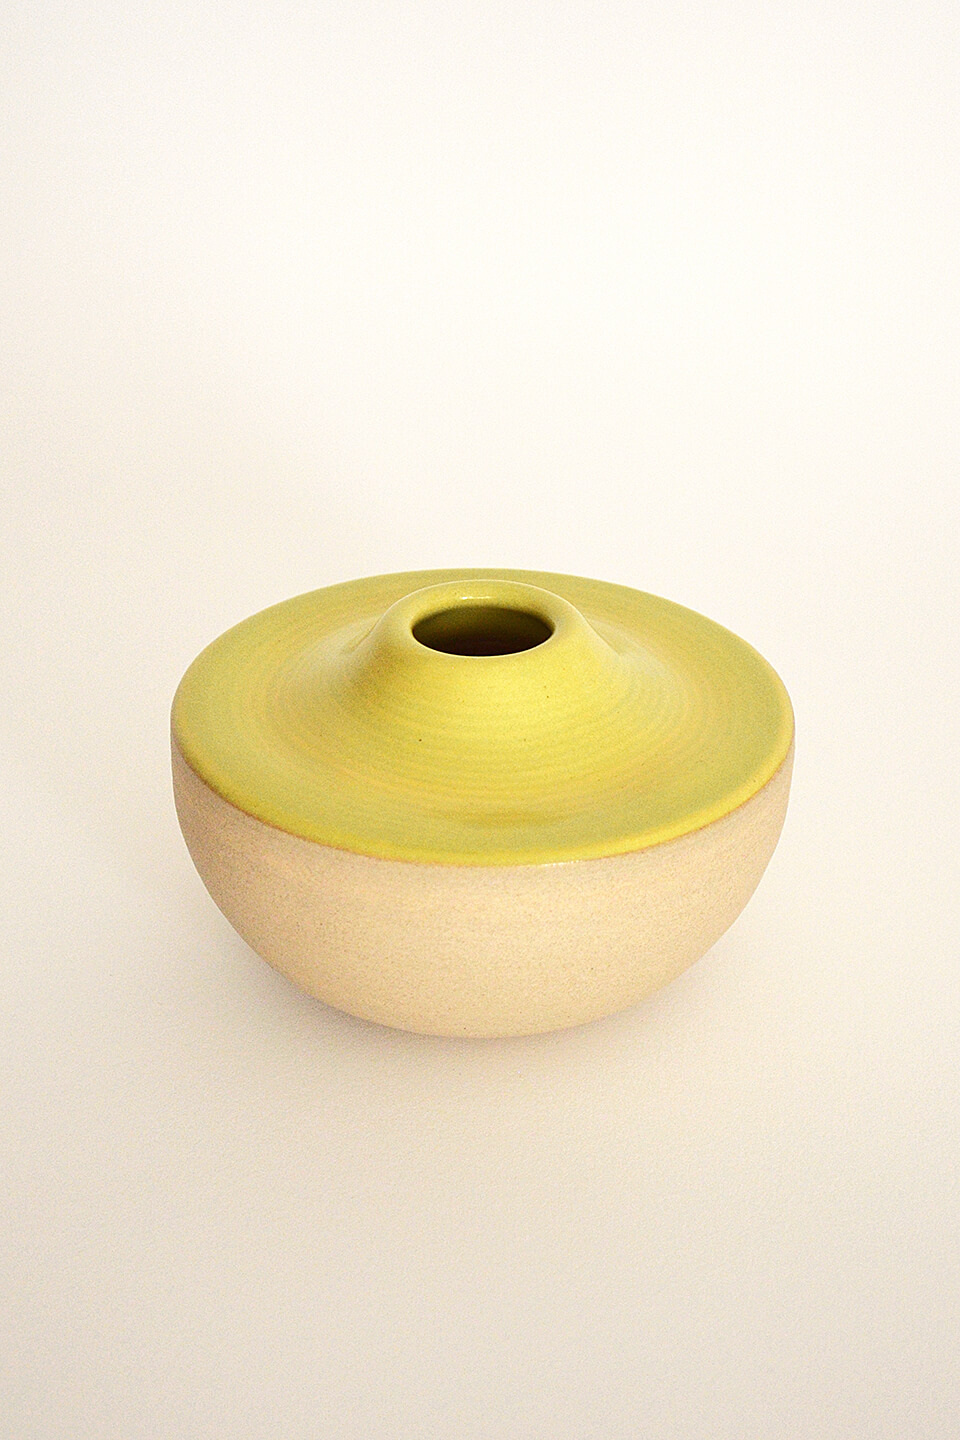 Satin Yellow Green Ceramic Vase No. 635